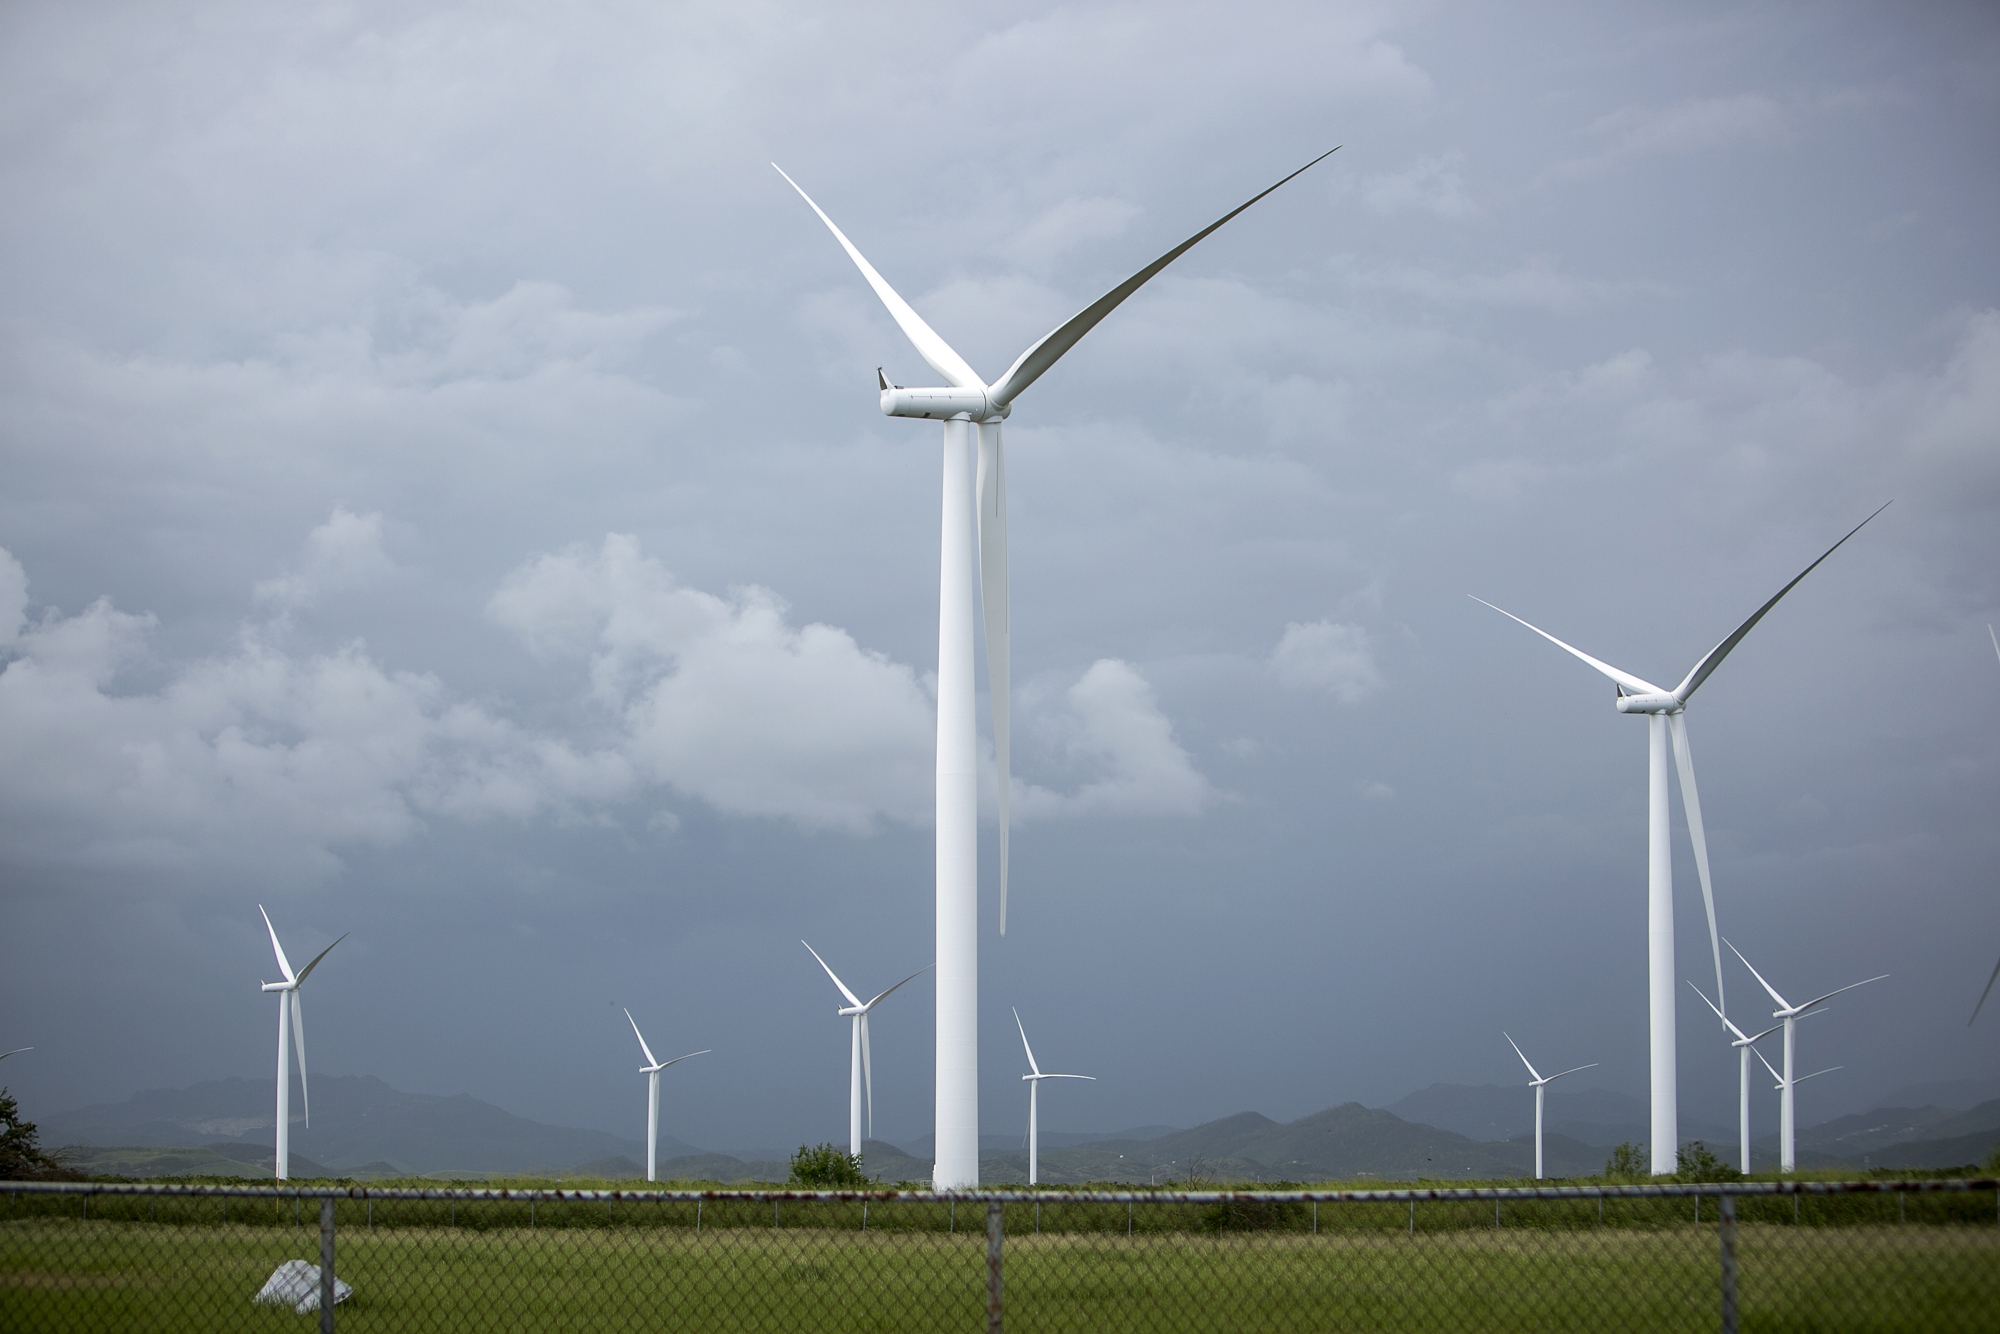 Subsidy Free Wind Power Possible in $2 7 Billion Dutch Auction